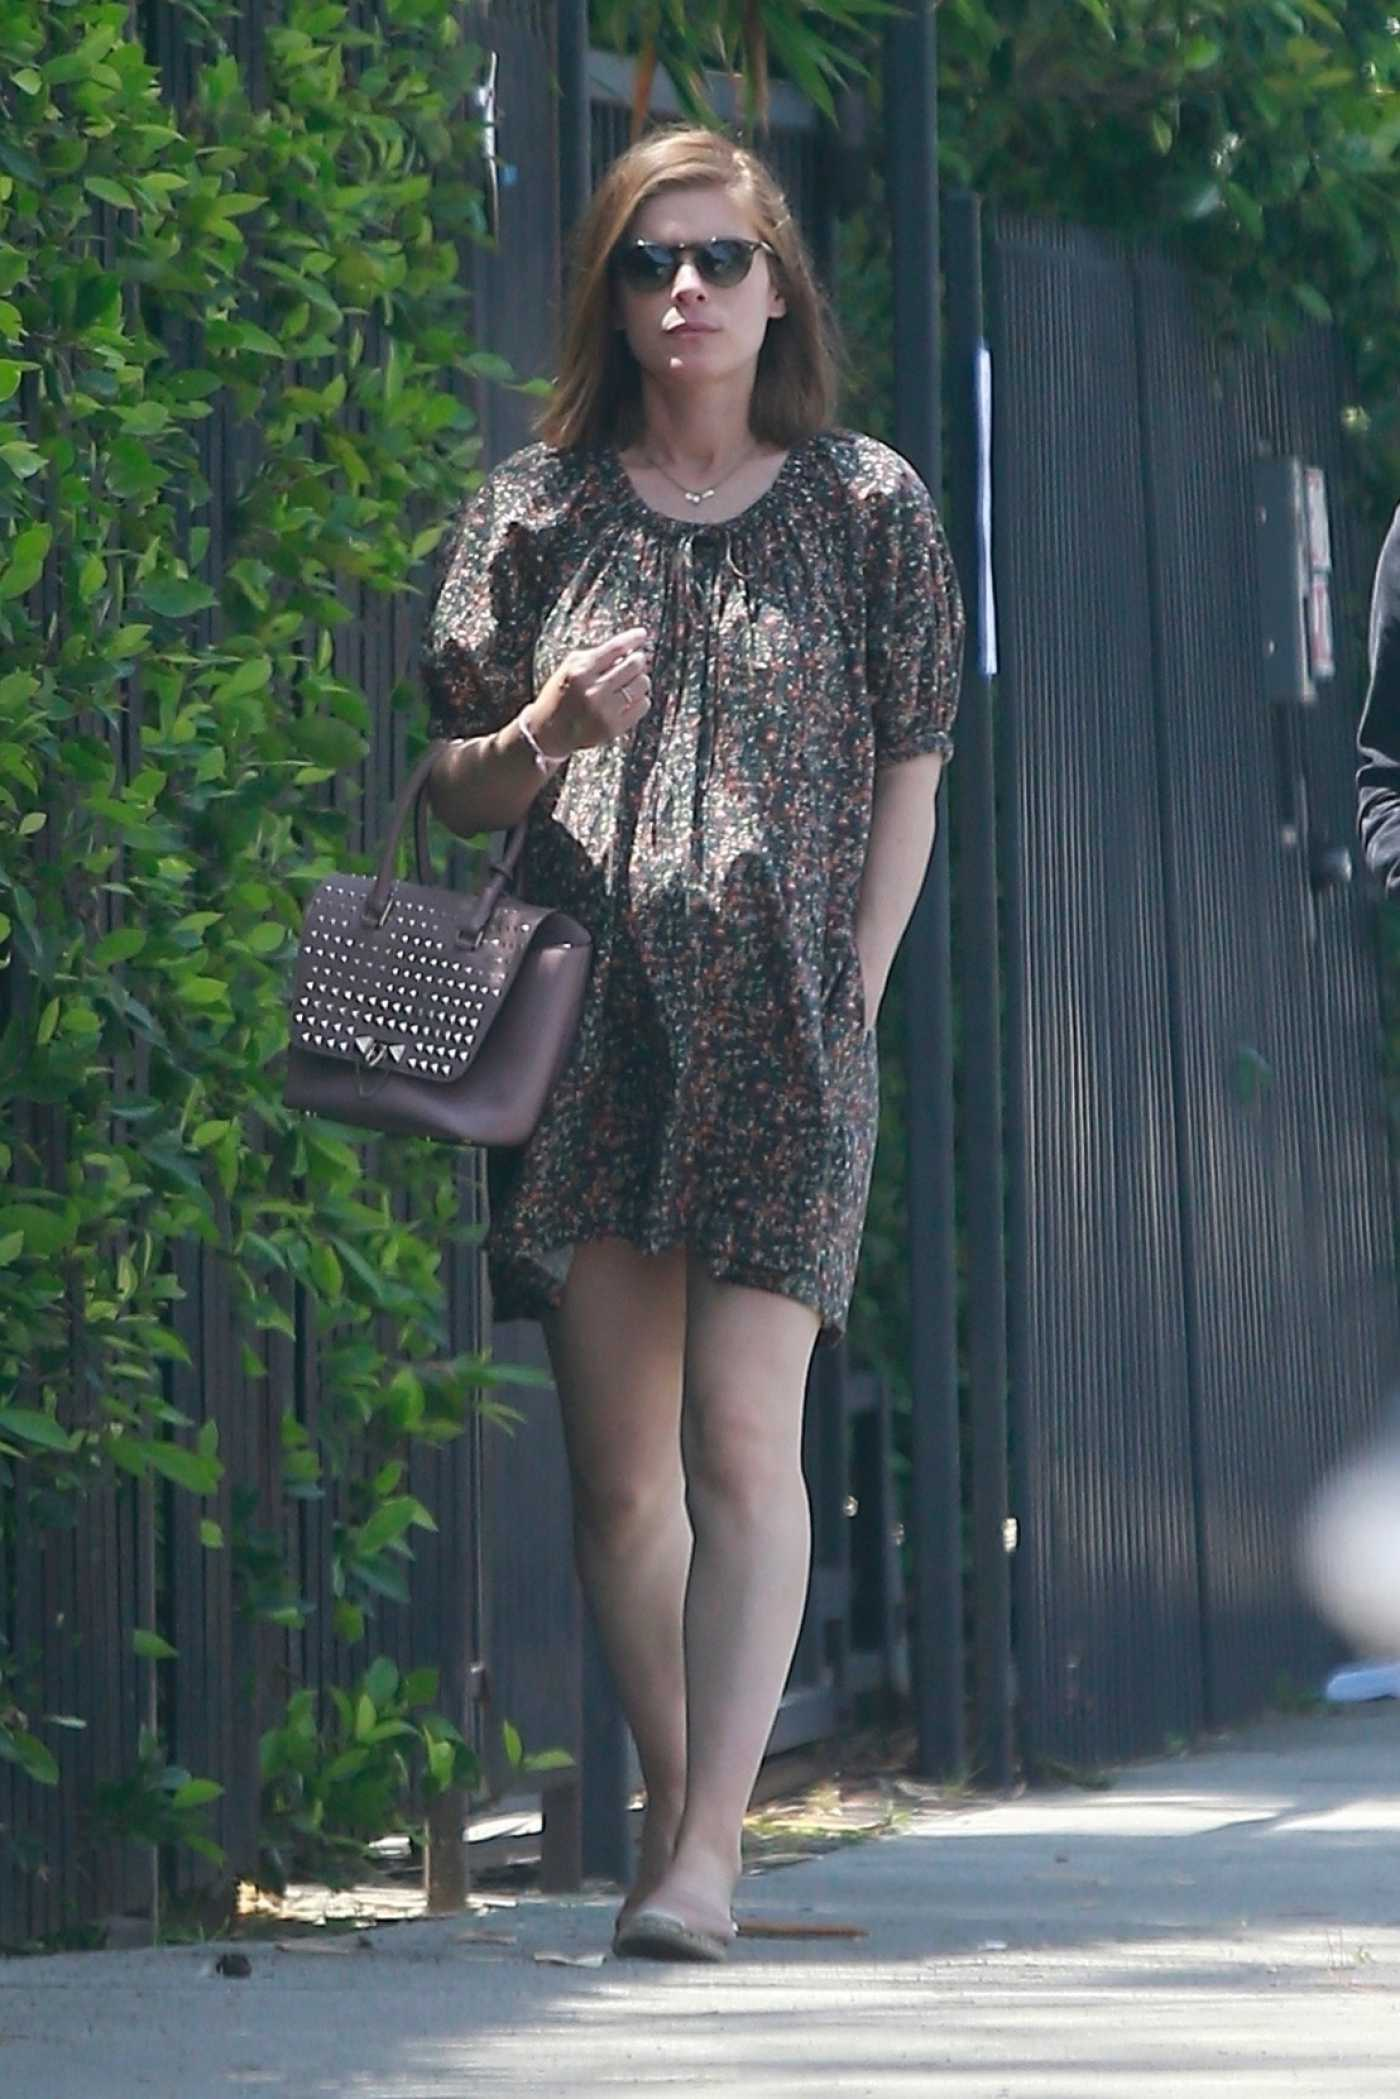 Kate Mara in a Short Floral Dress Was Seen Out with Her Husband in Los Feliz 05/04/2019